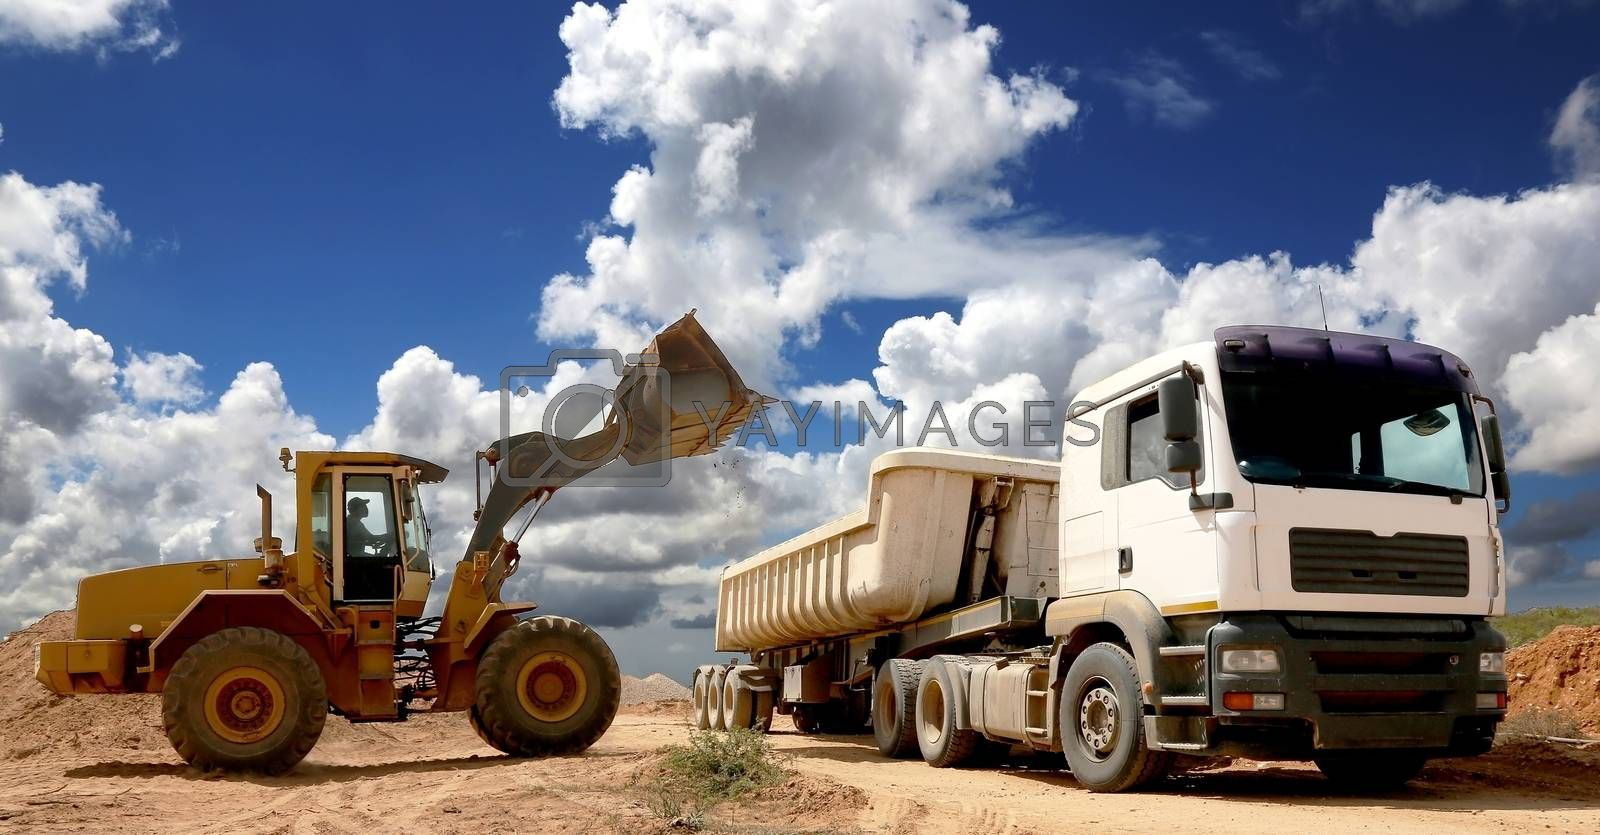 Royalty free image of Front End Loader Filling Truck by fouroaks